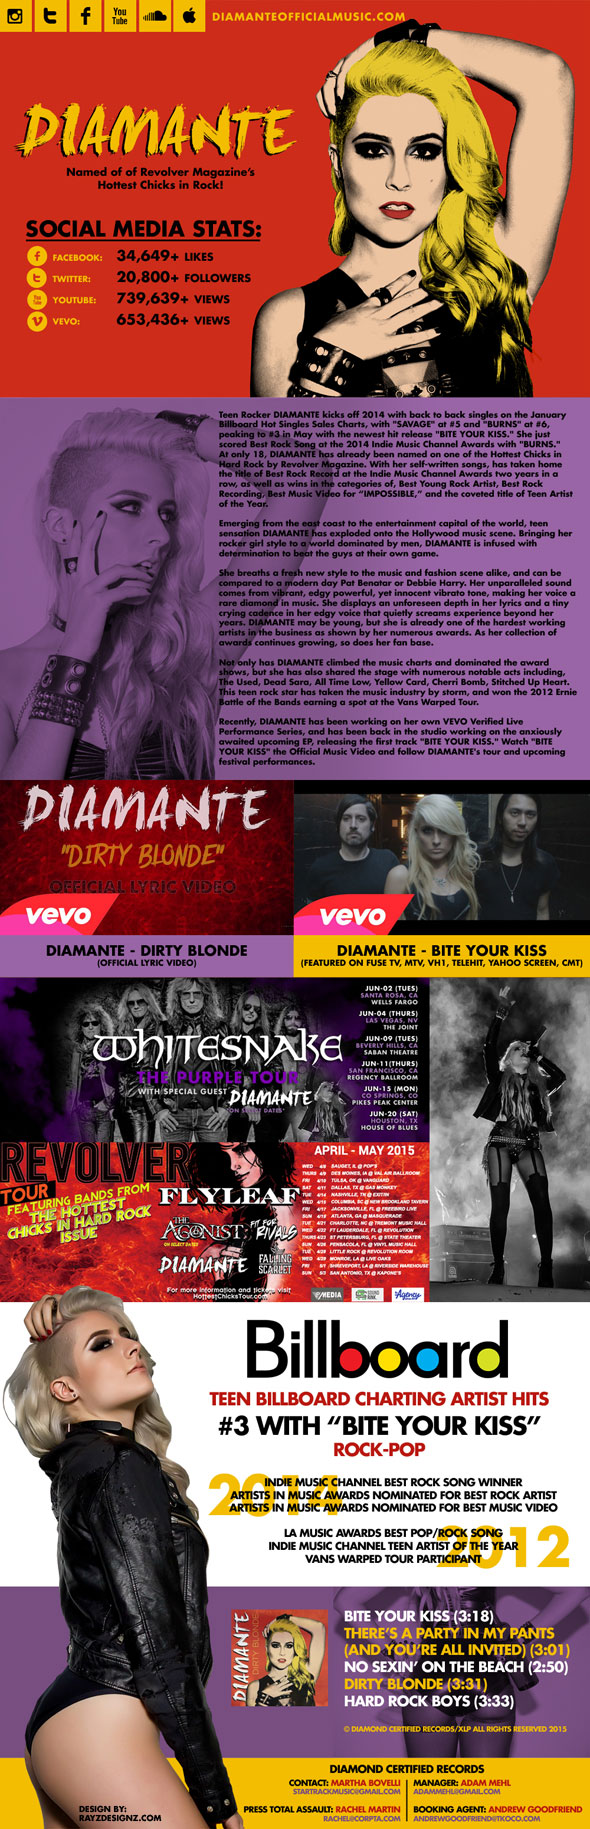 DIAMANTE_epk_2015_WEB